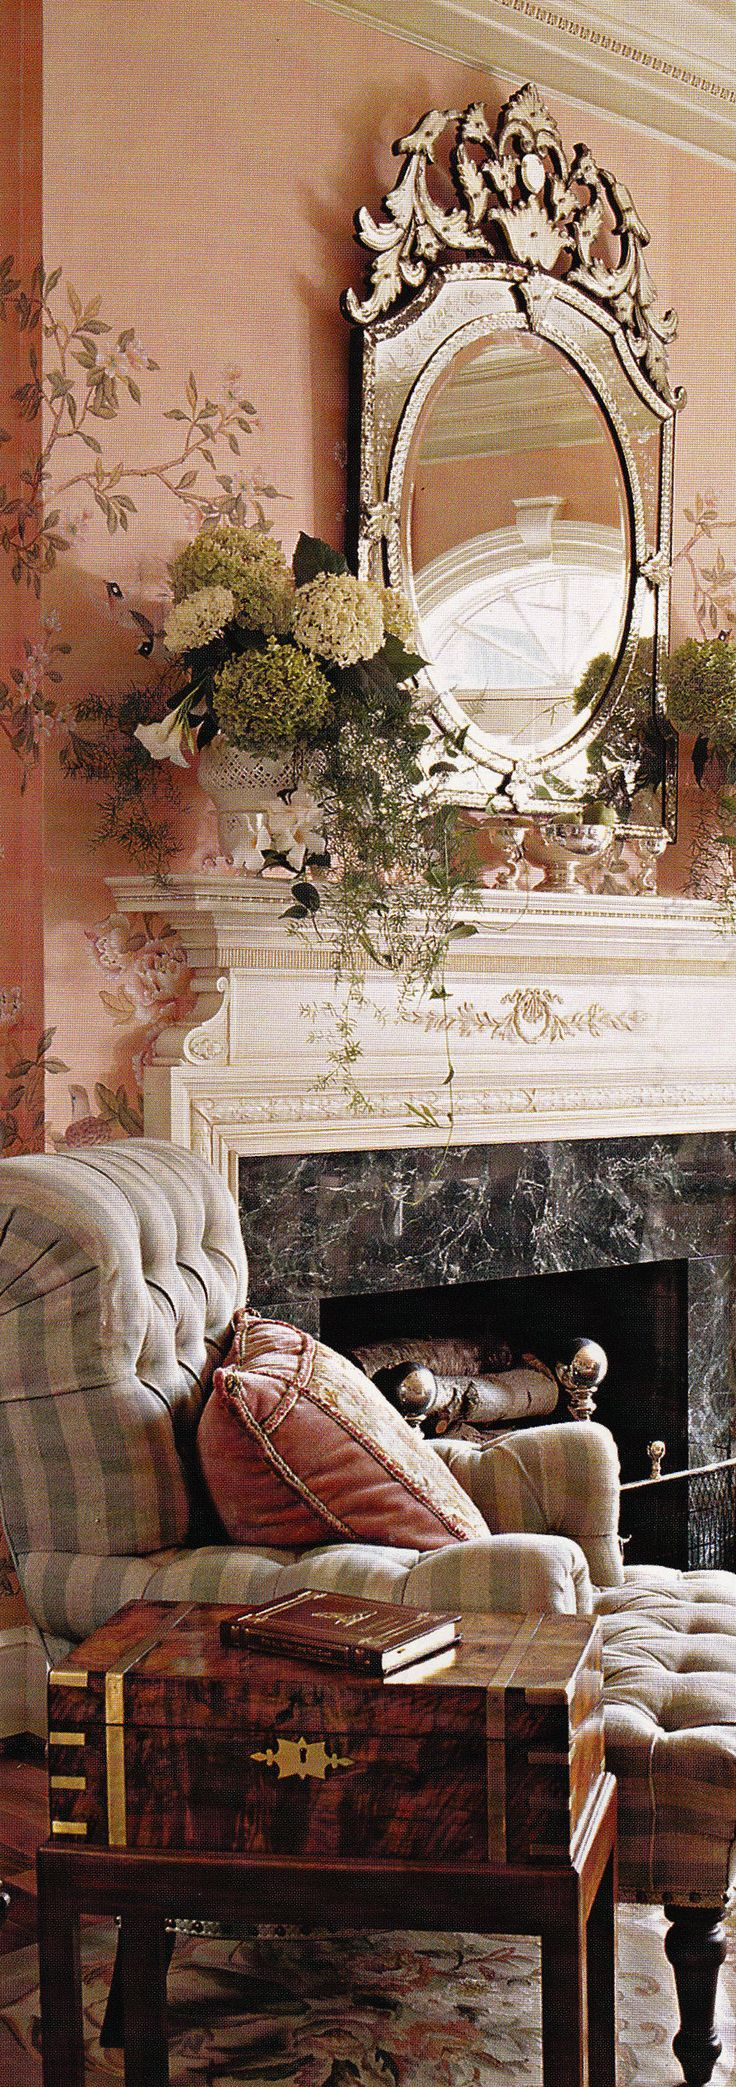 Wallpaper For Living Room 17 Best Ideas About Living Room Wallpaper On Pinterest Alcove